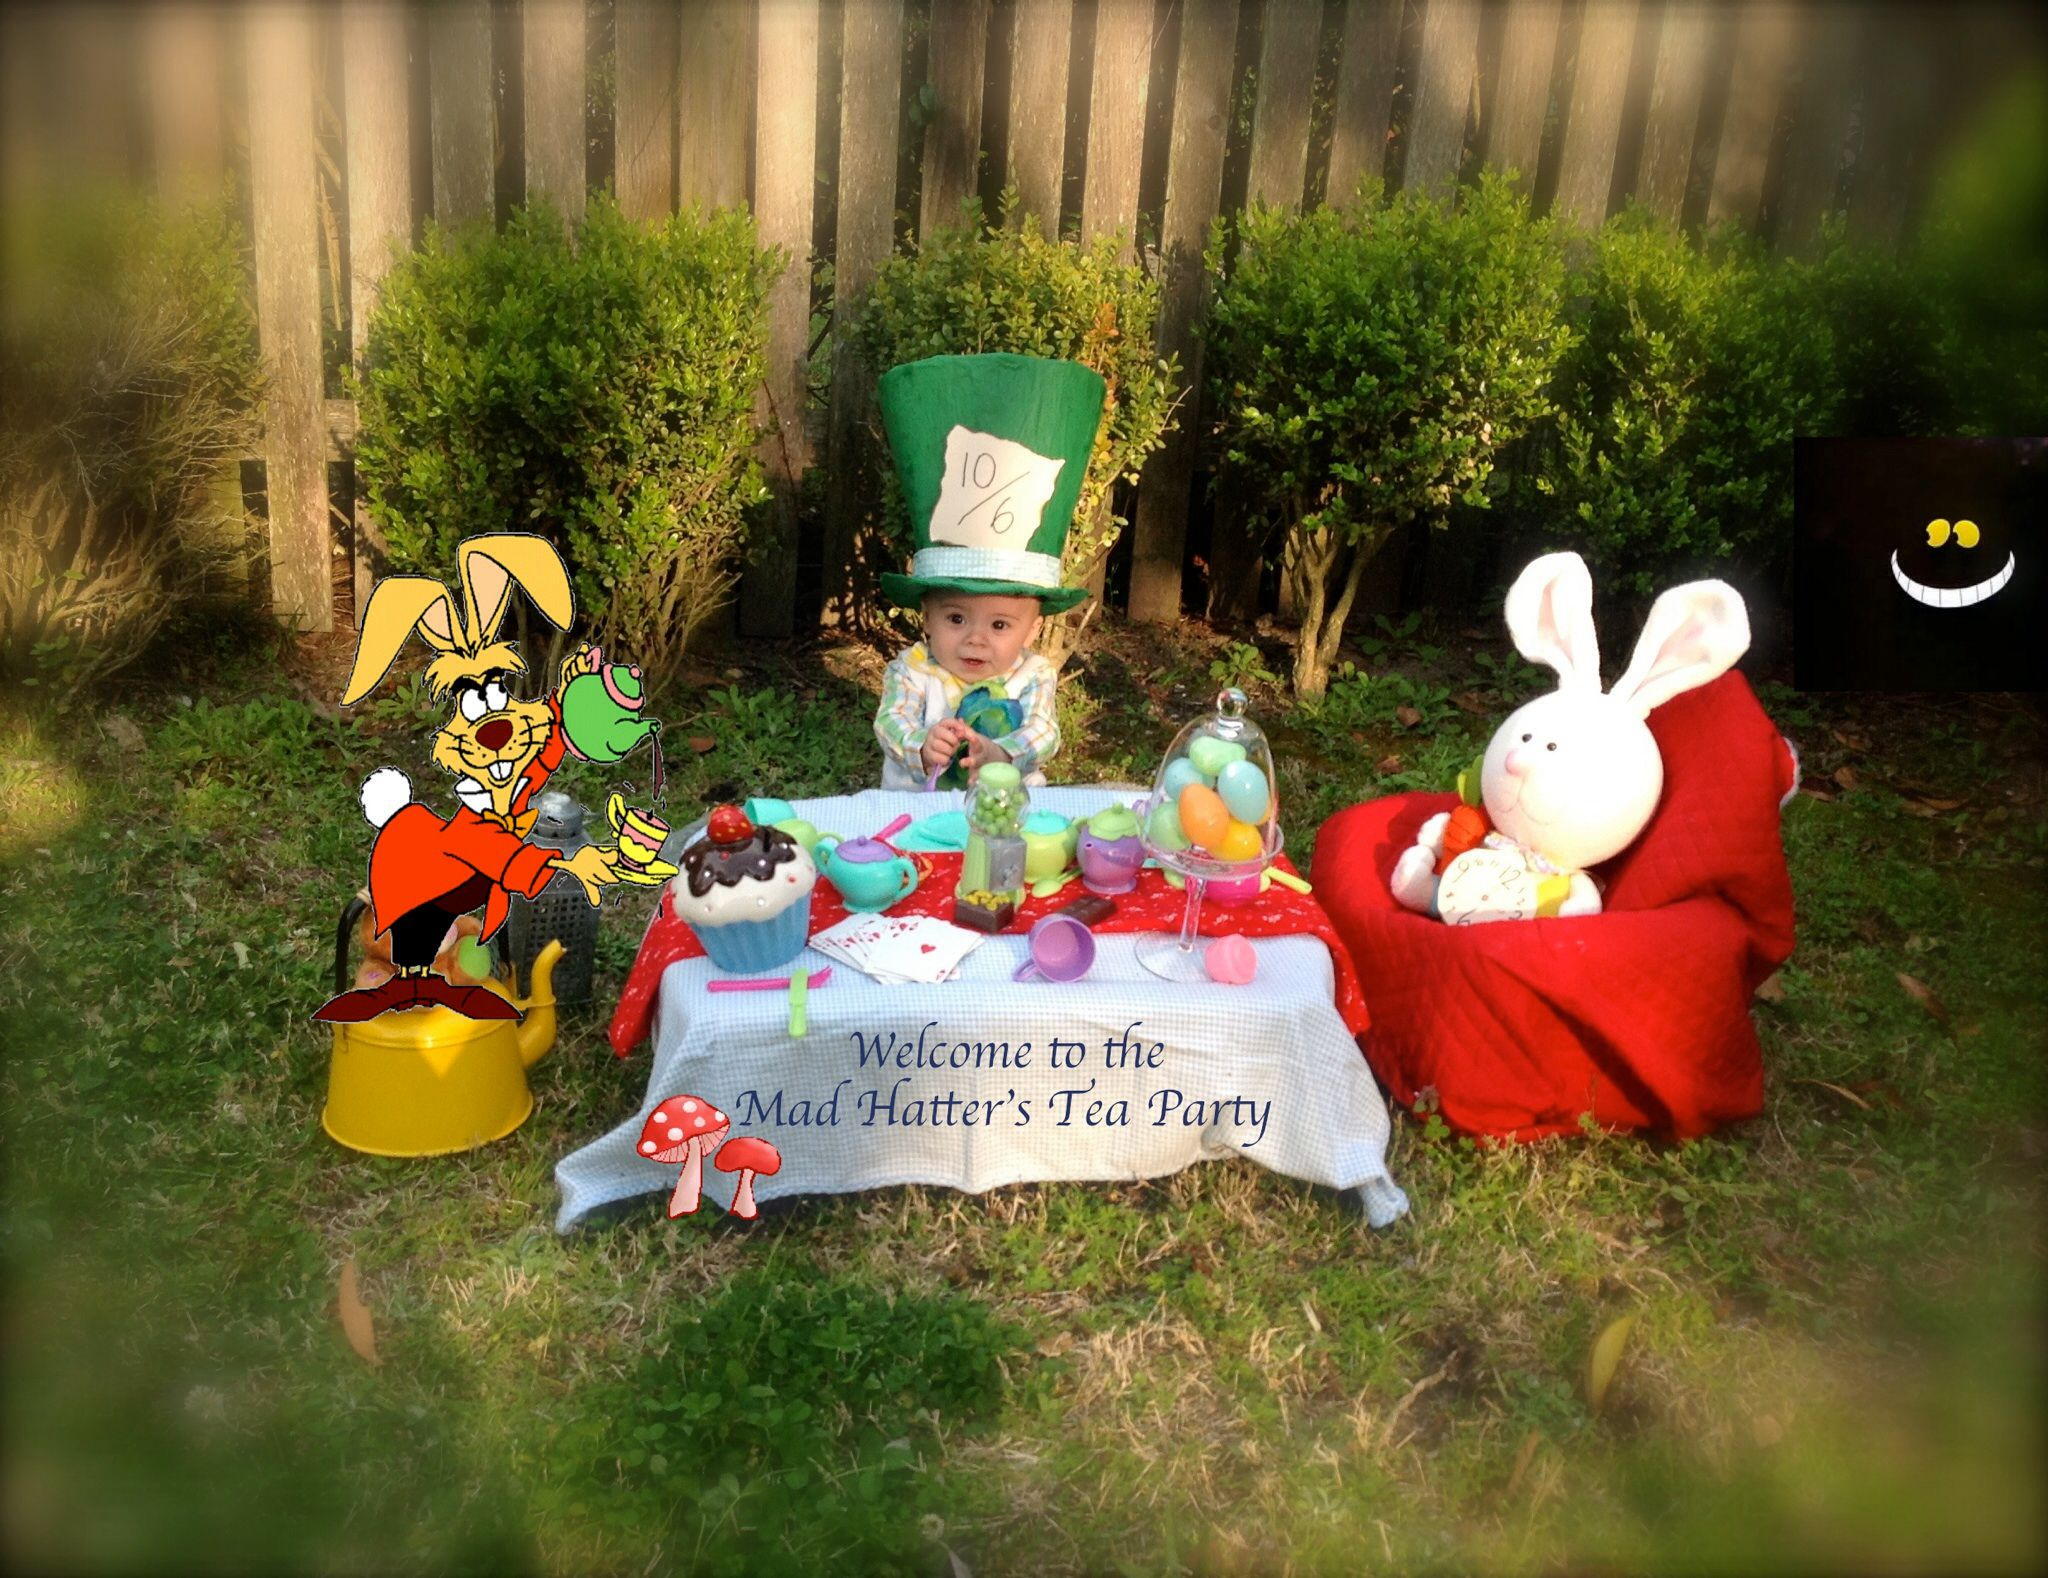 Babys First Easter Photos I Went With A Alice In Wonderland Tea Party Theme My Baby Boy As The Mad Hatter Definitely One Of Most Fun Scenes And